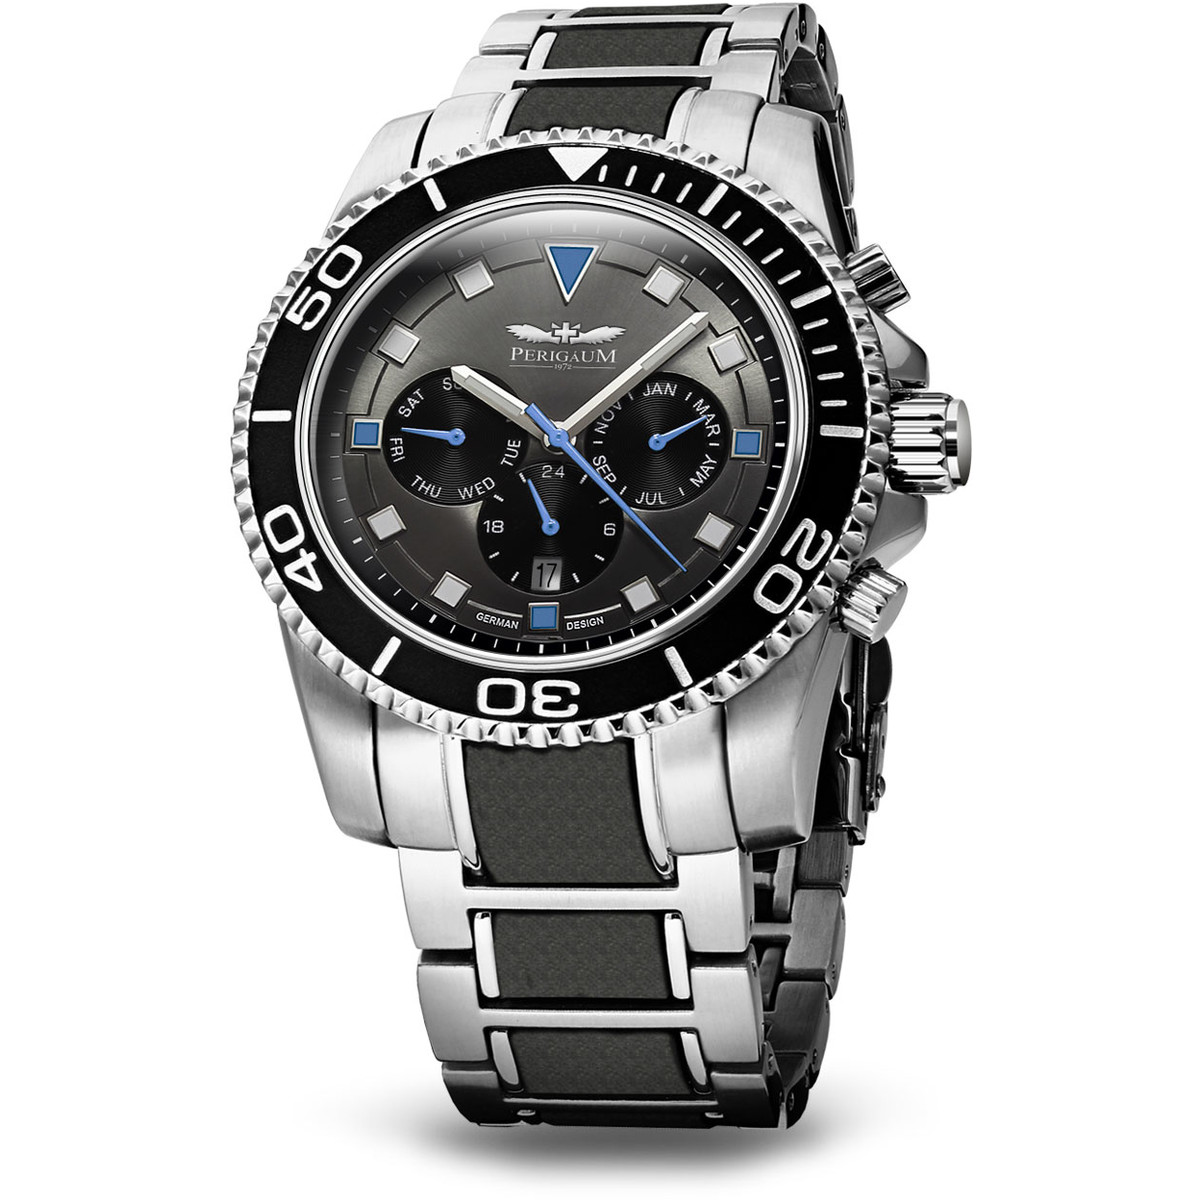 Ceas barbatesc Perigaum Stingray P-1401-BL -blue- Automatic 46 mm 100M de mana original